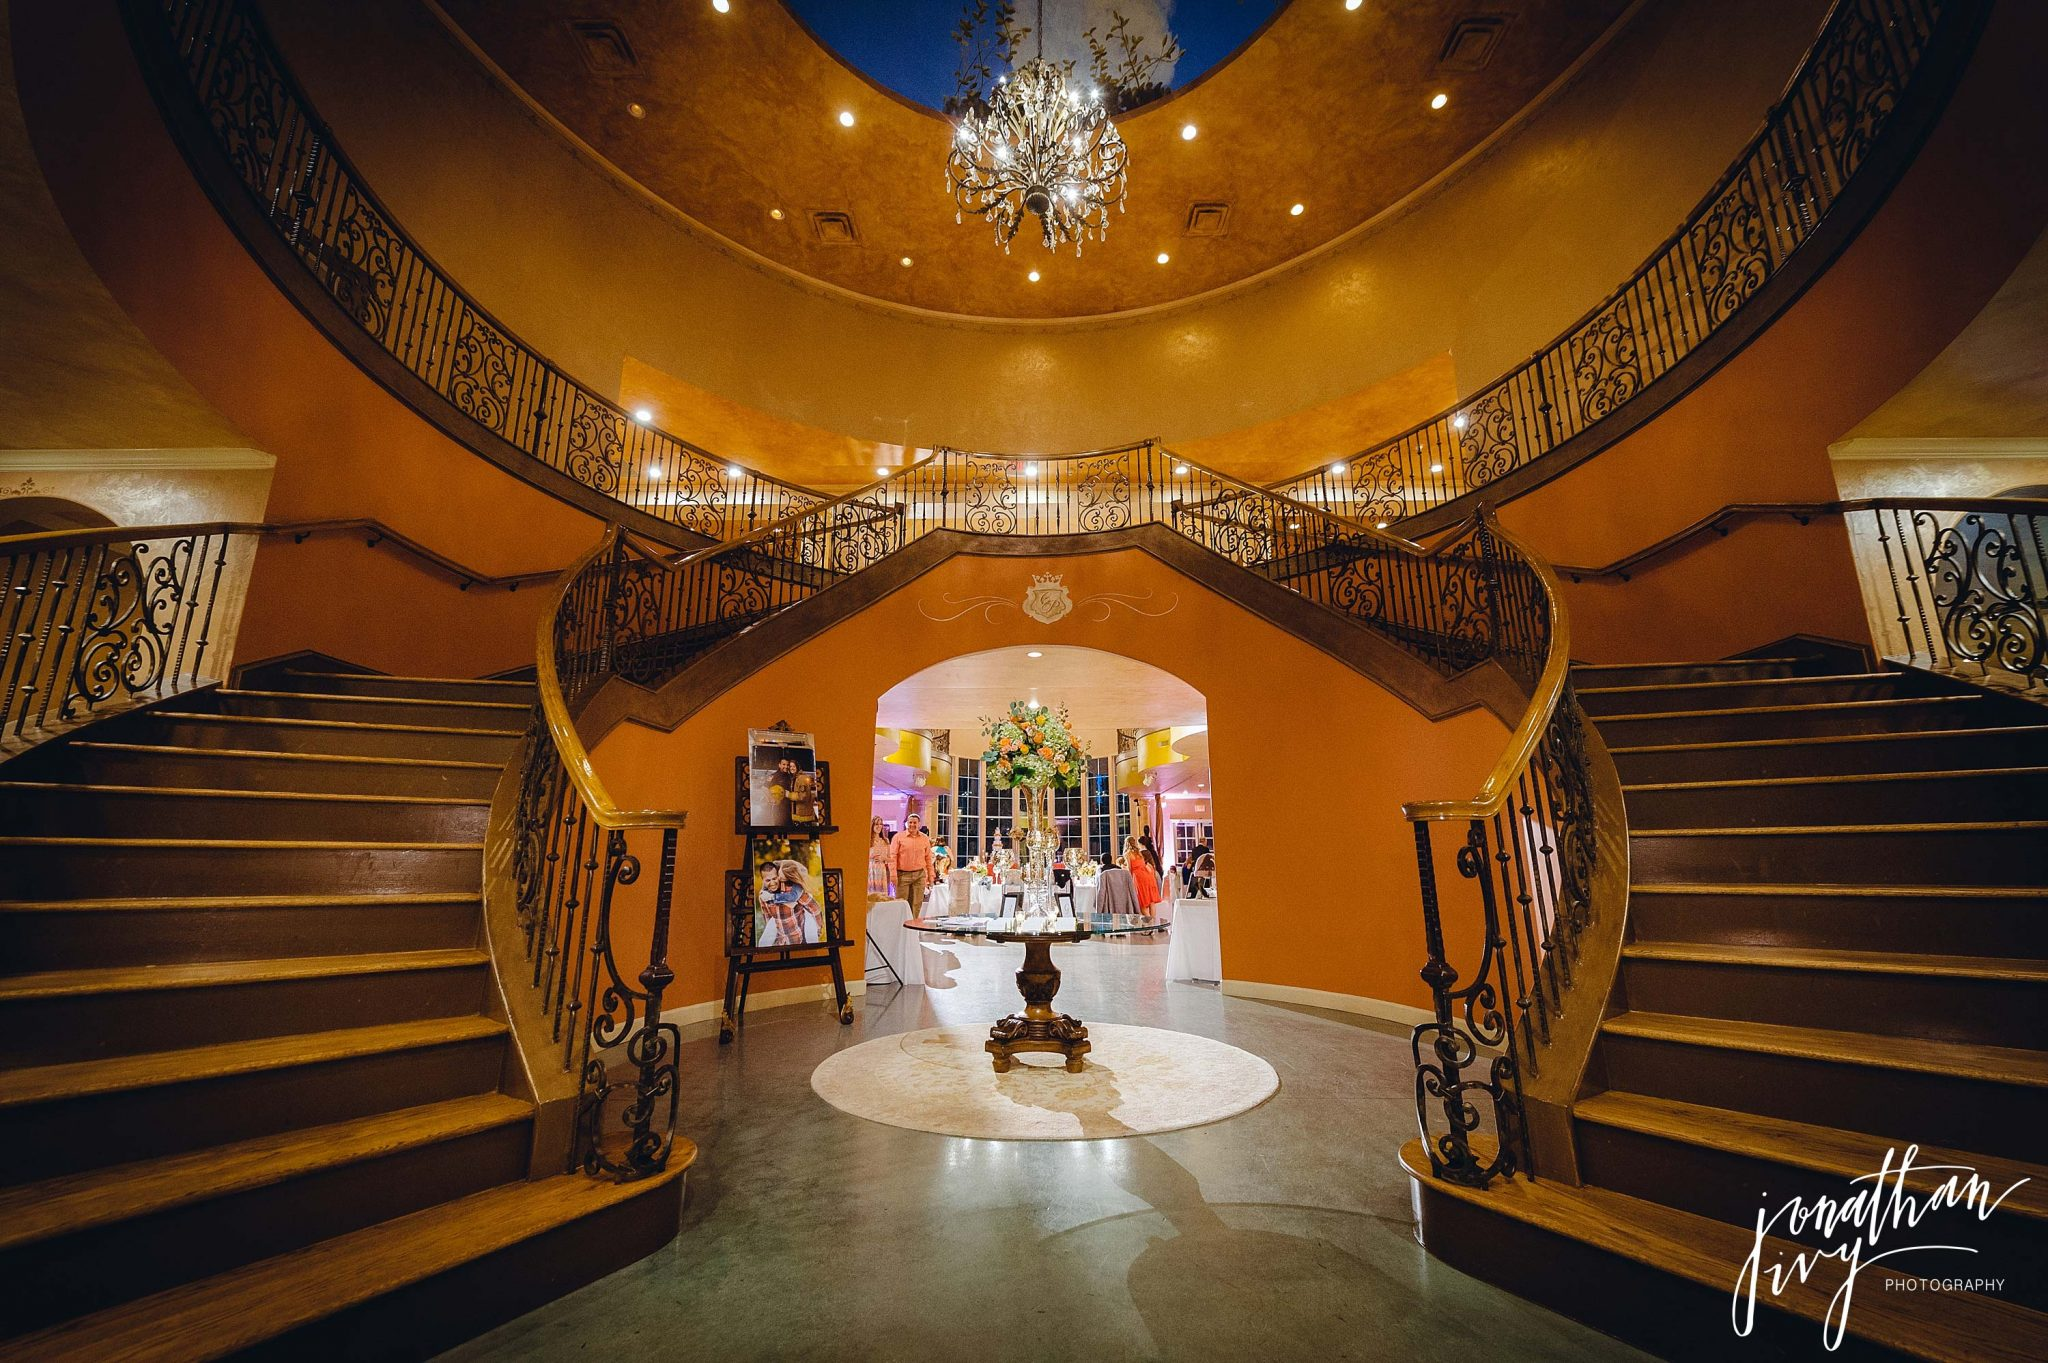 Chateau Polonez grand staircase